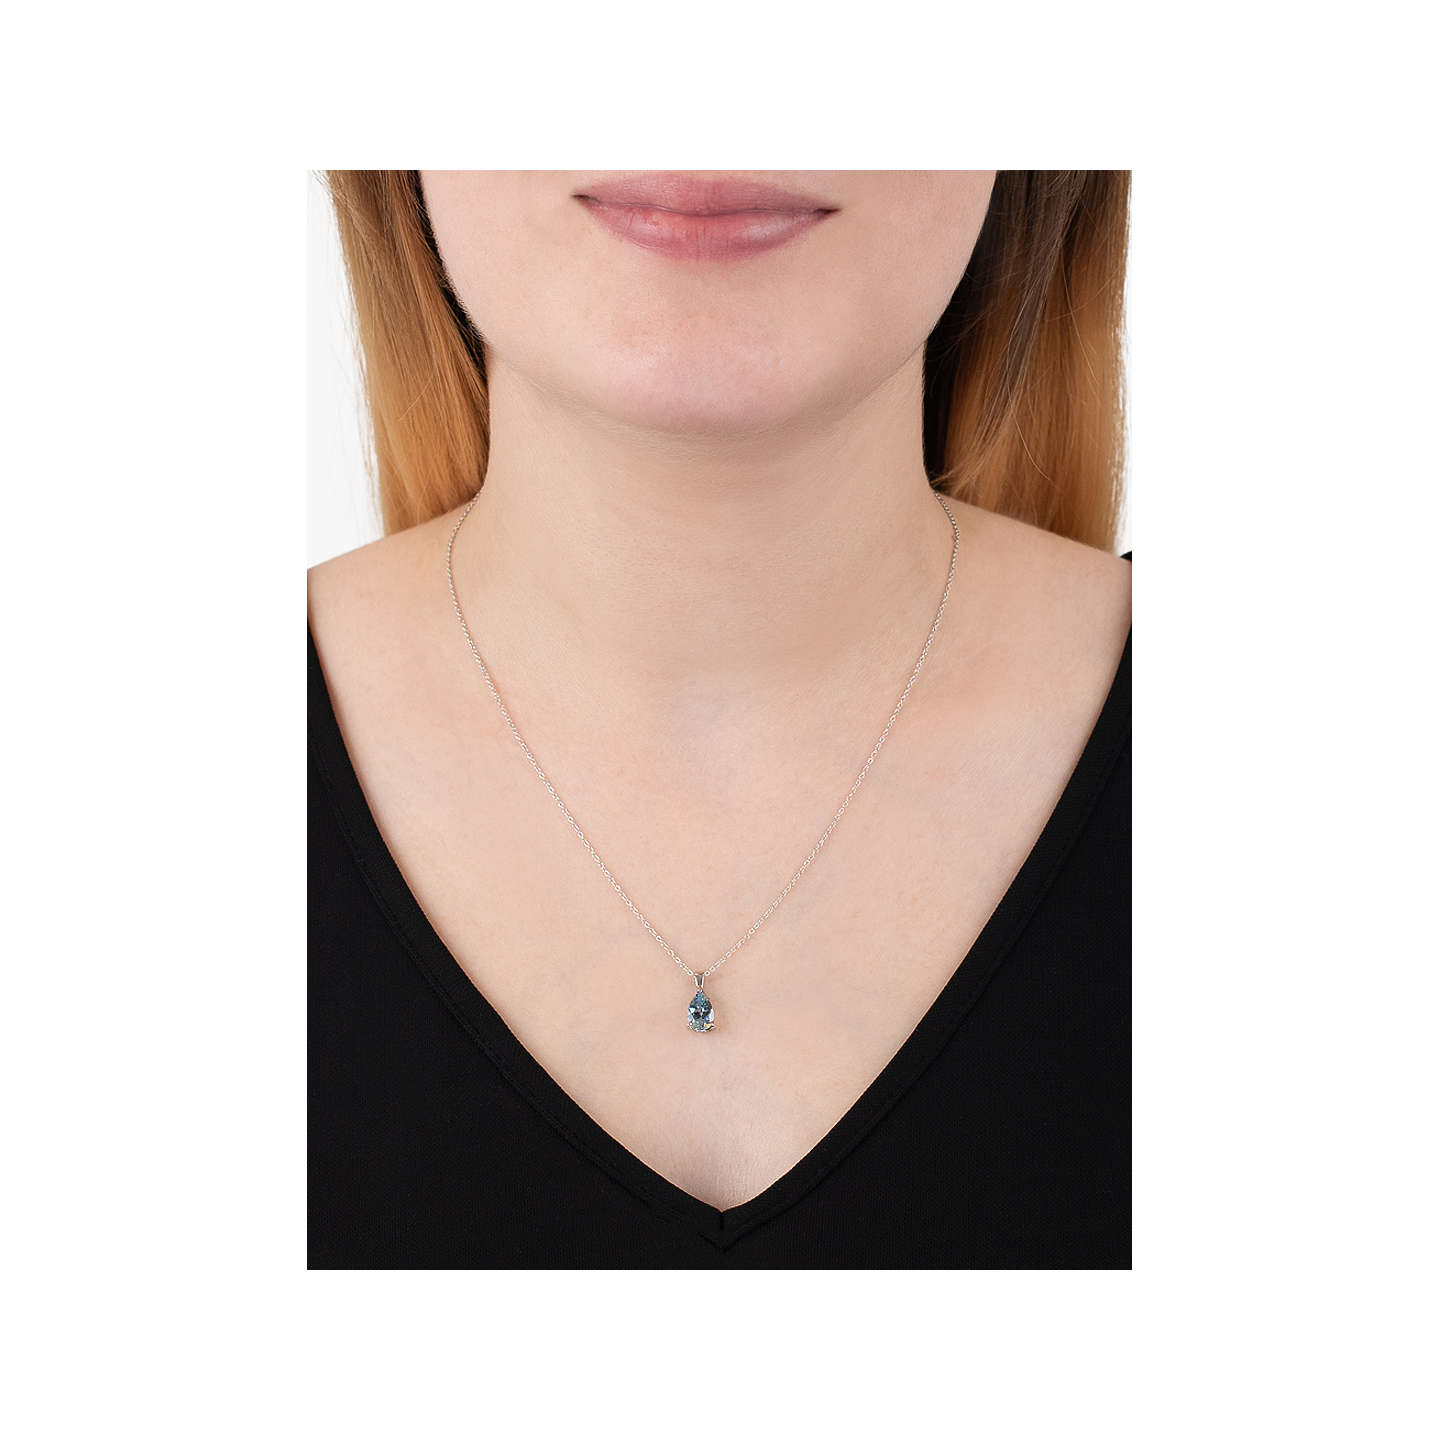 alternate pendant long teardrop size os fontaine view necklaces product